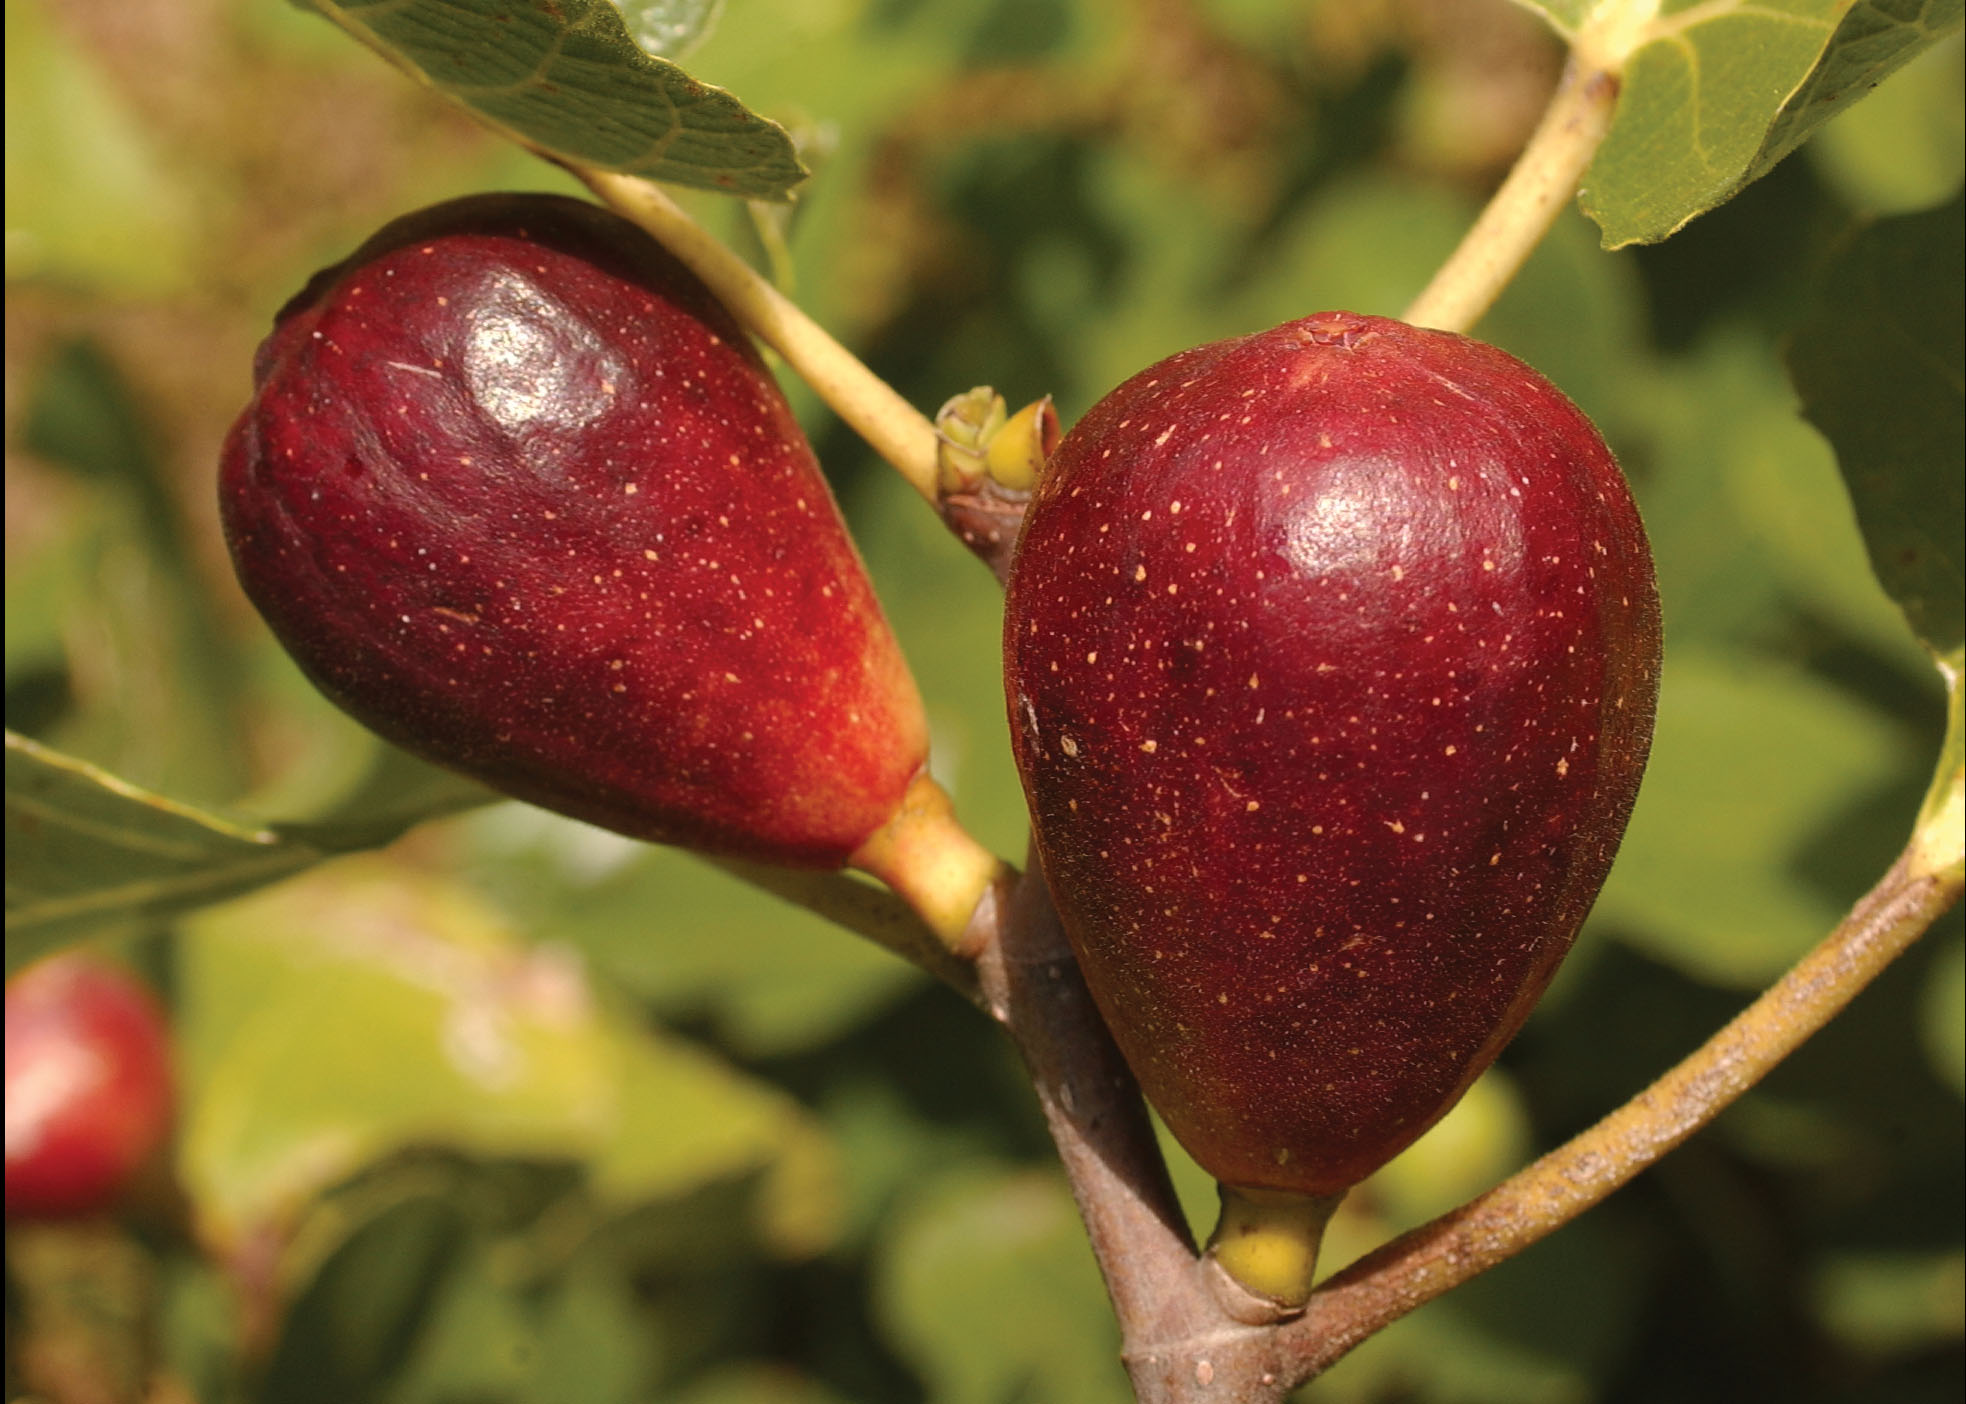 Louisiana Pecan and Fig Production Remain Strong While Peaches Fade